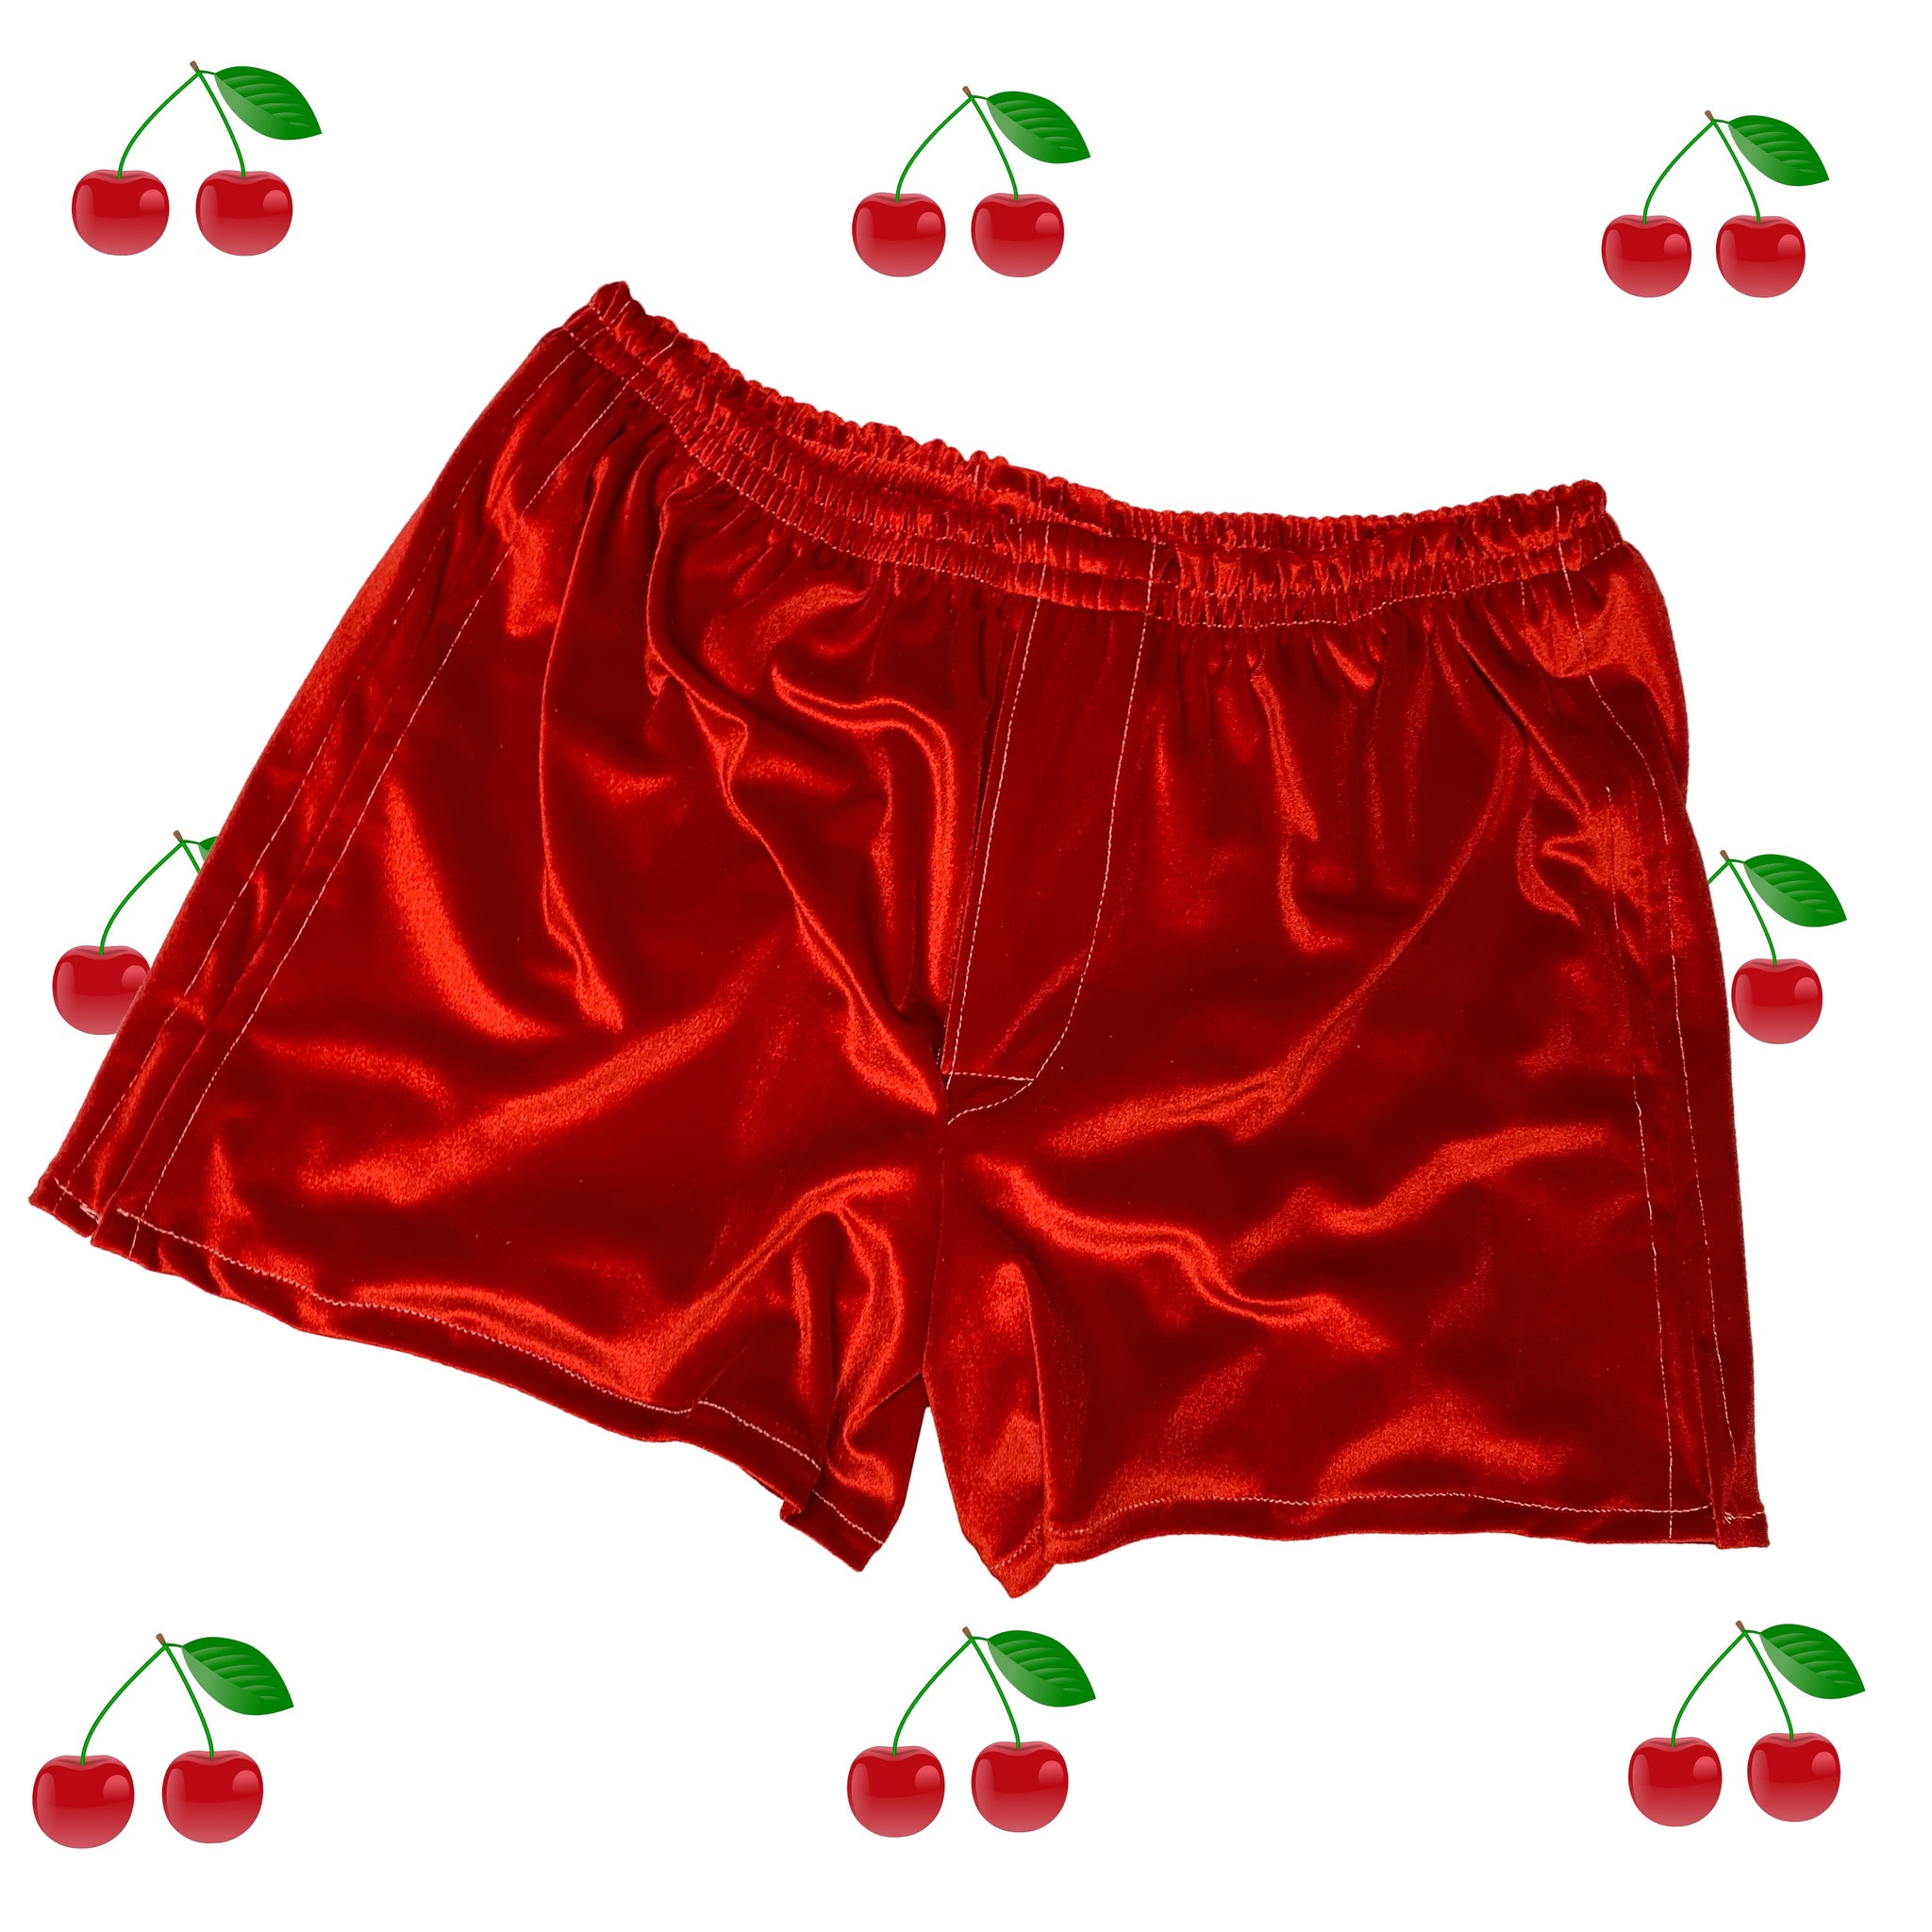 Lounge Boxers in Cherry